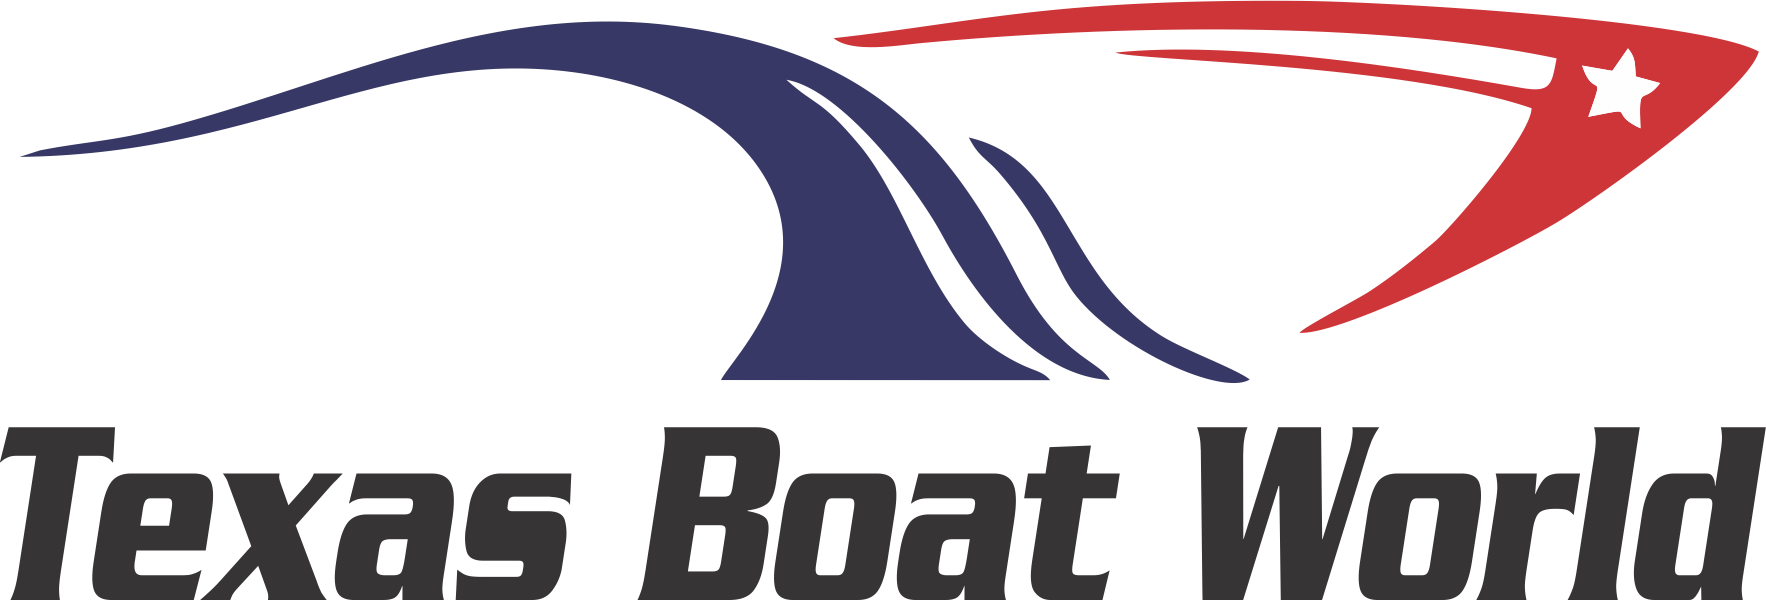 texas boat world draw.png